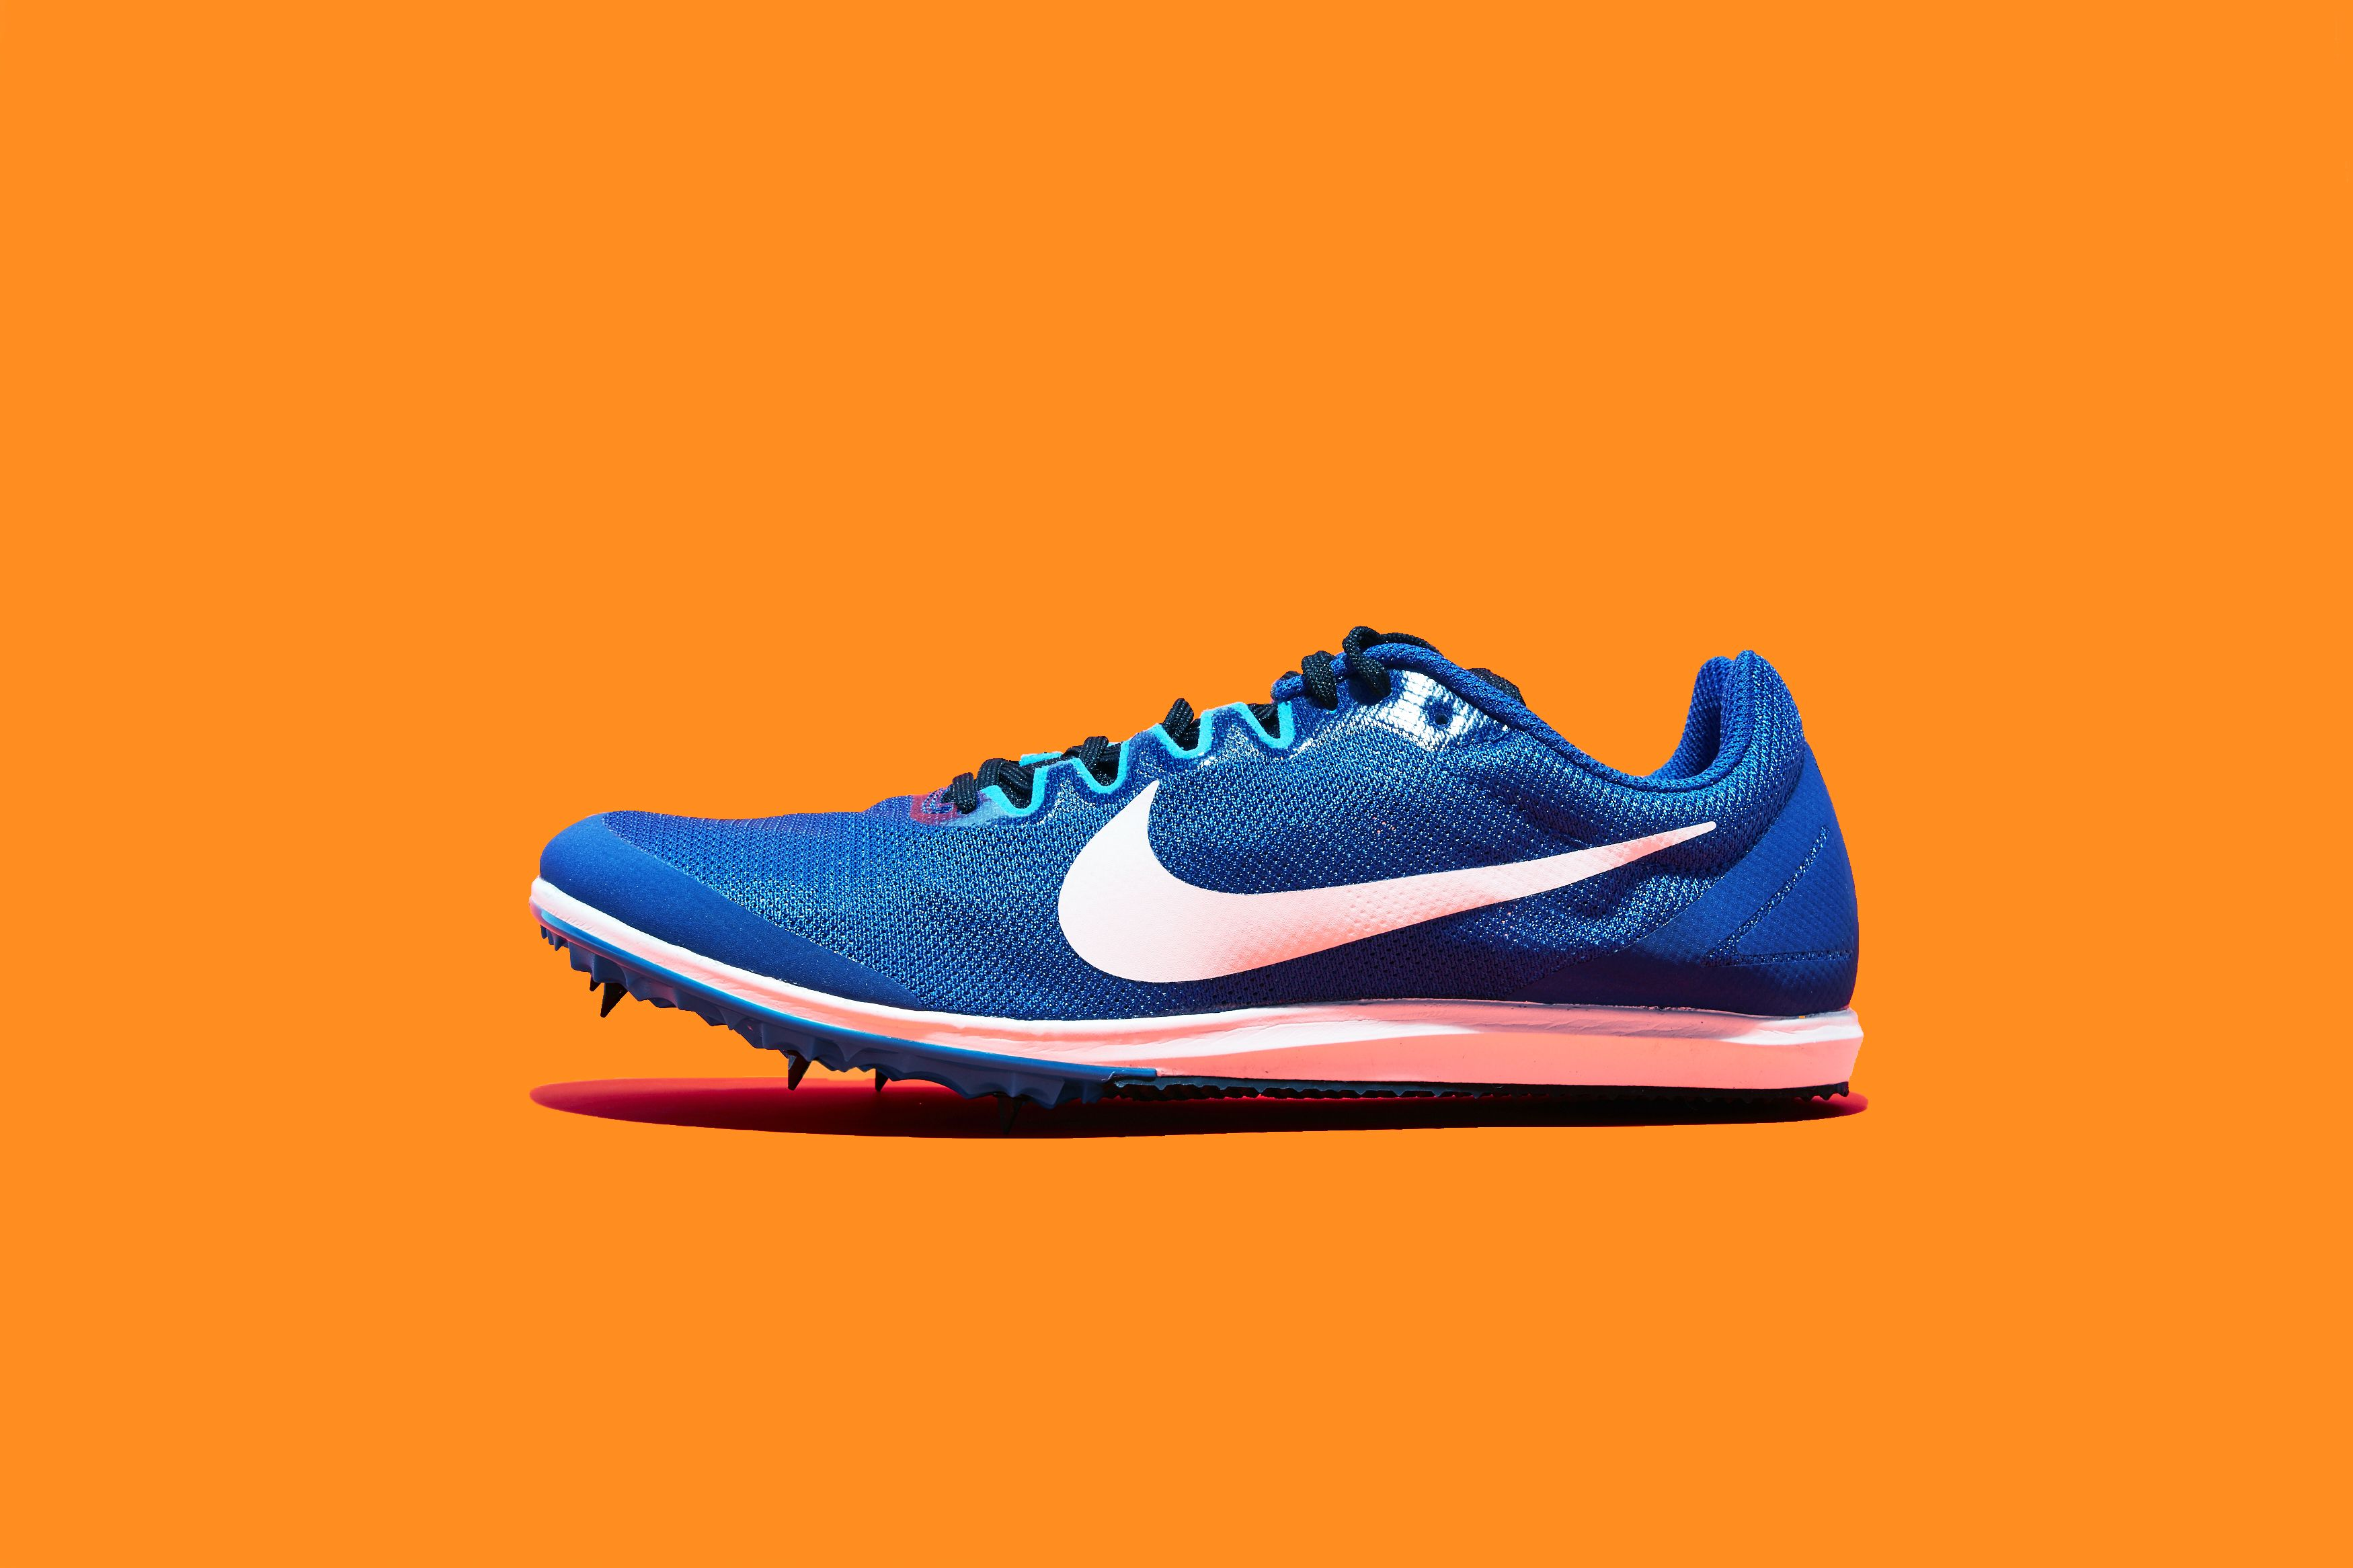 Nike Zoom Rival D 10 Blau Orange